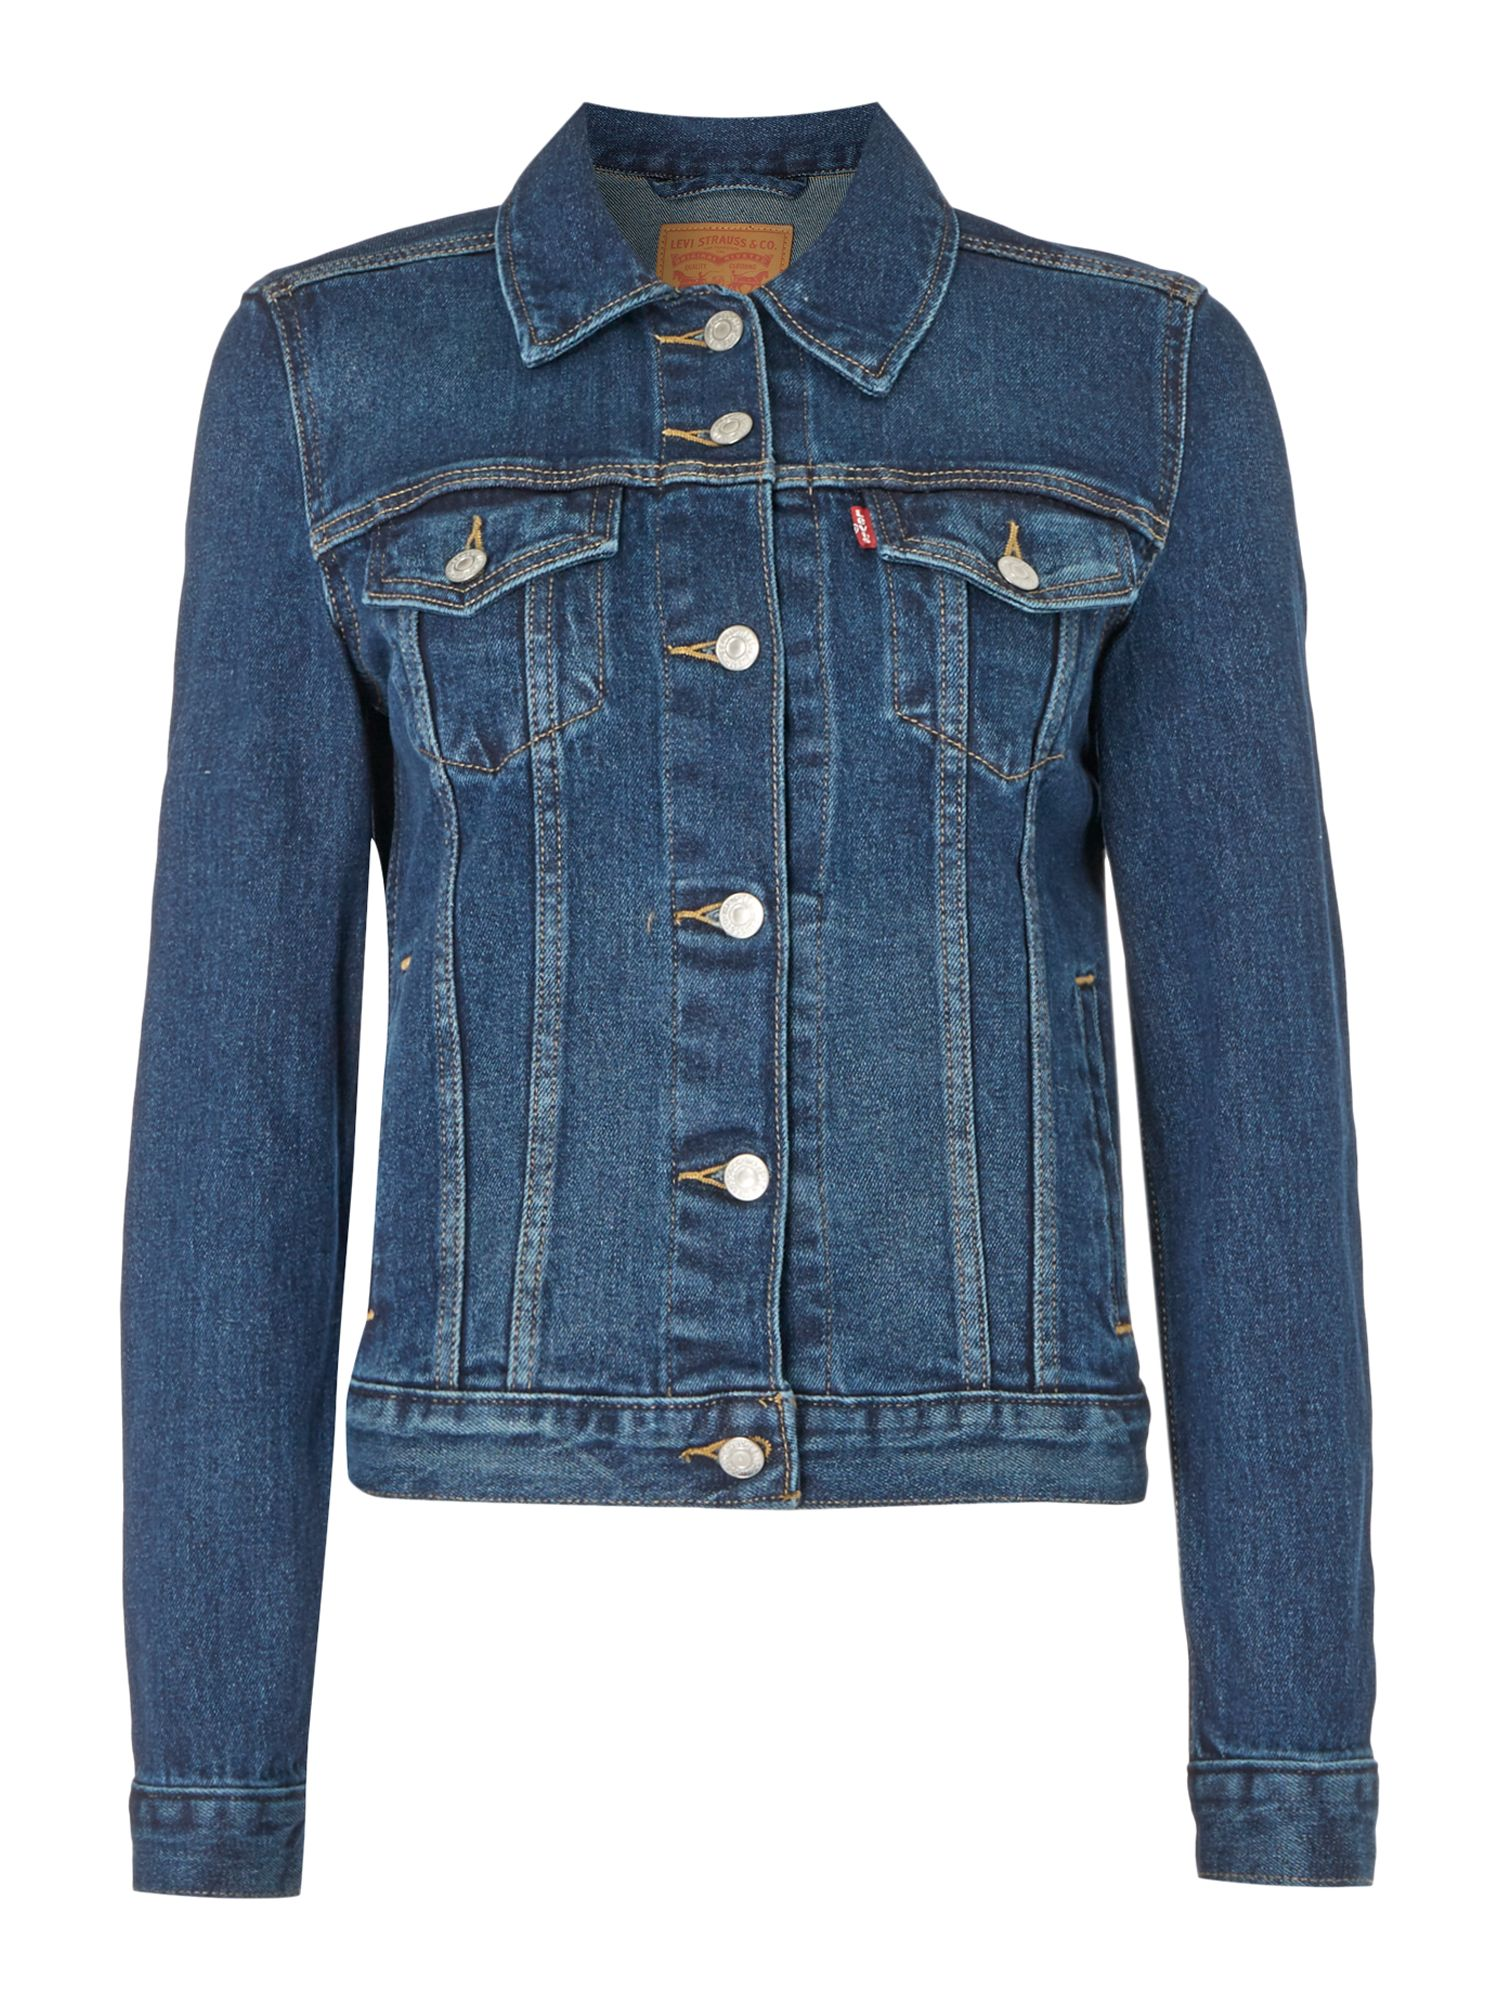 Levi's Origional Trucker Jacket In Lust For Life, Denim Mid Wash